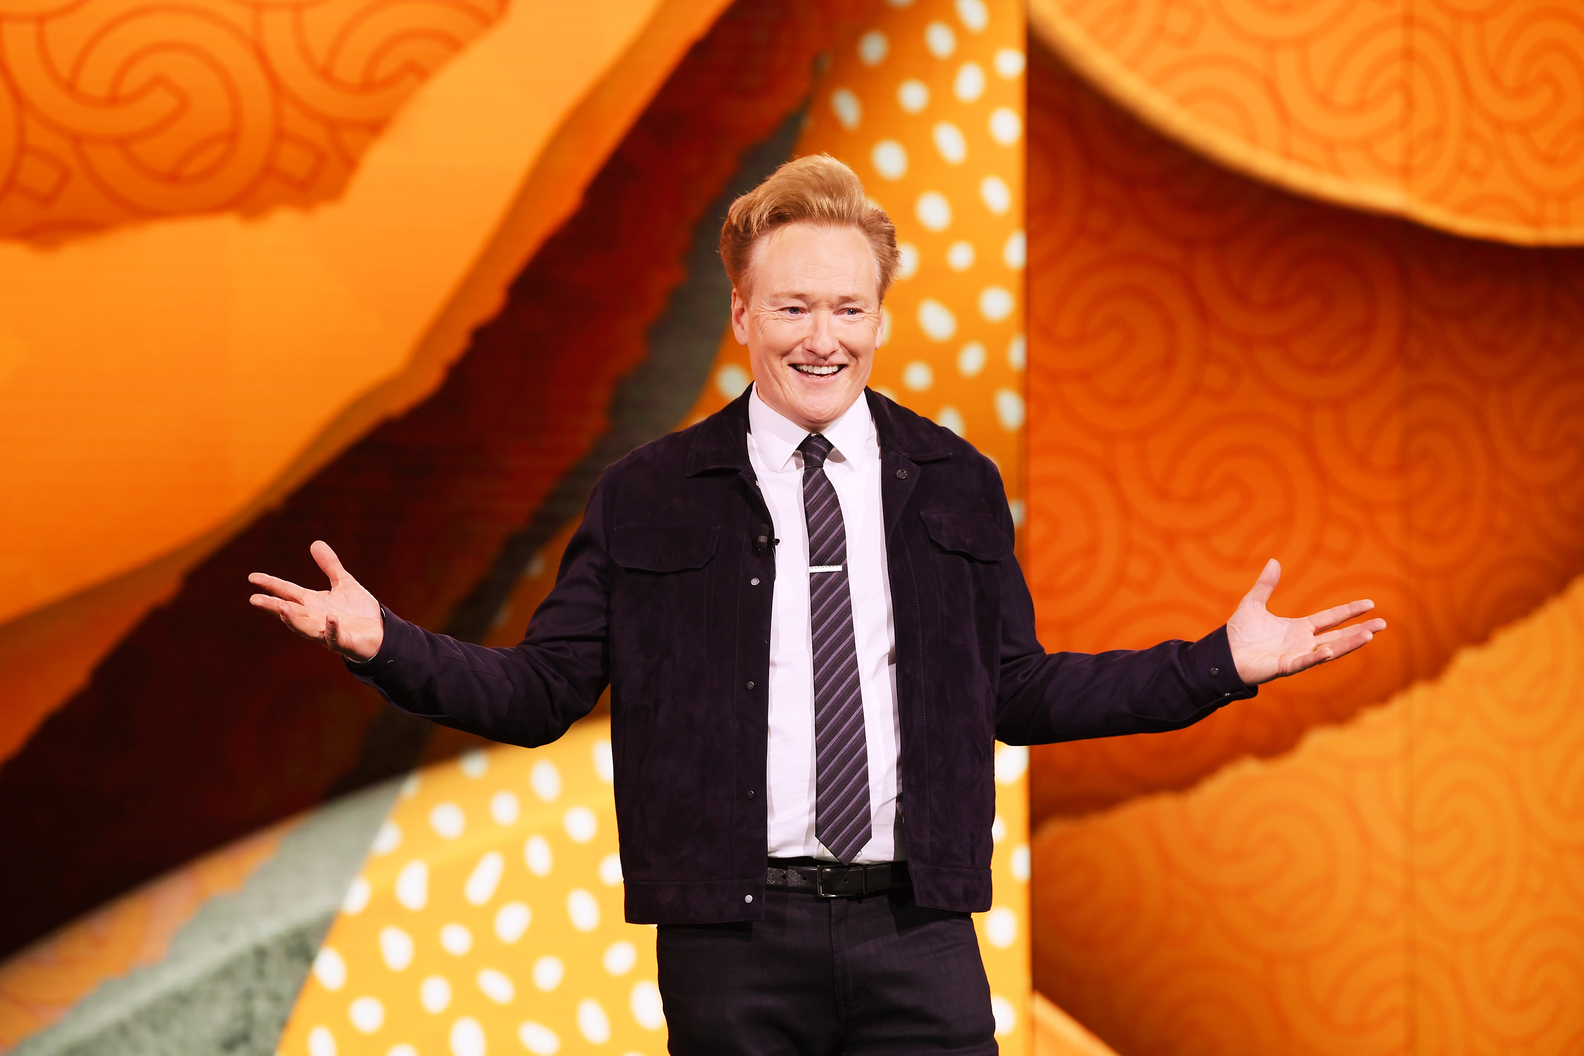 Conan O'Brien of TBS'sCONANat the WarnerMedia Upfront 2019 show at The Theater at Madison Square Garden on May 15, 2019 in New York City.